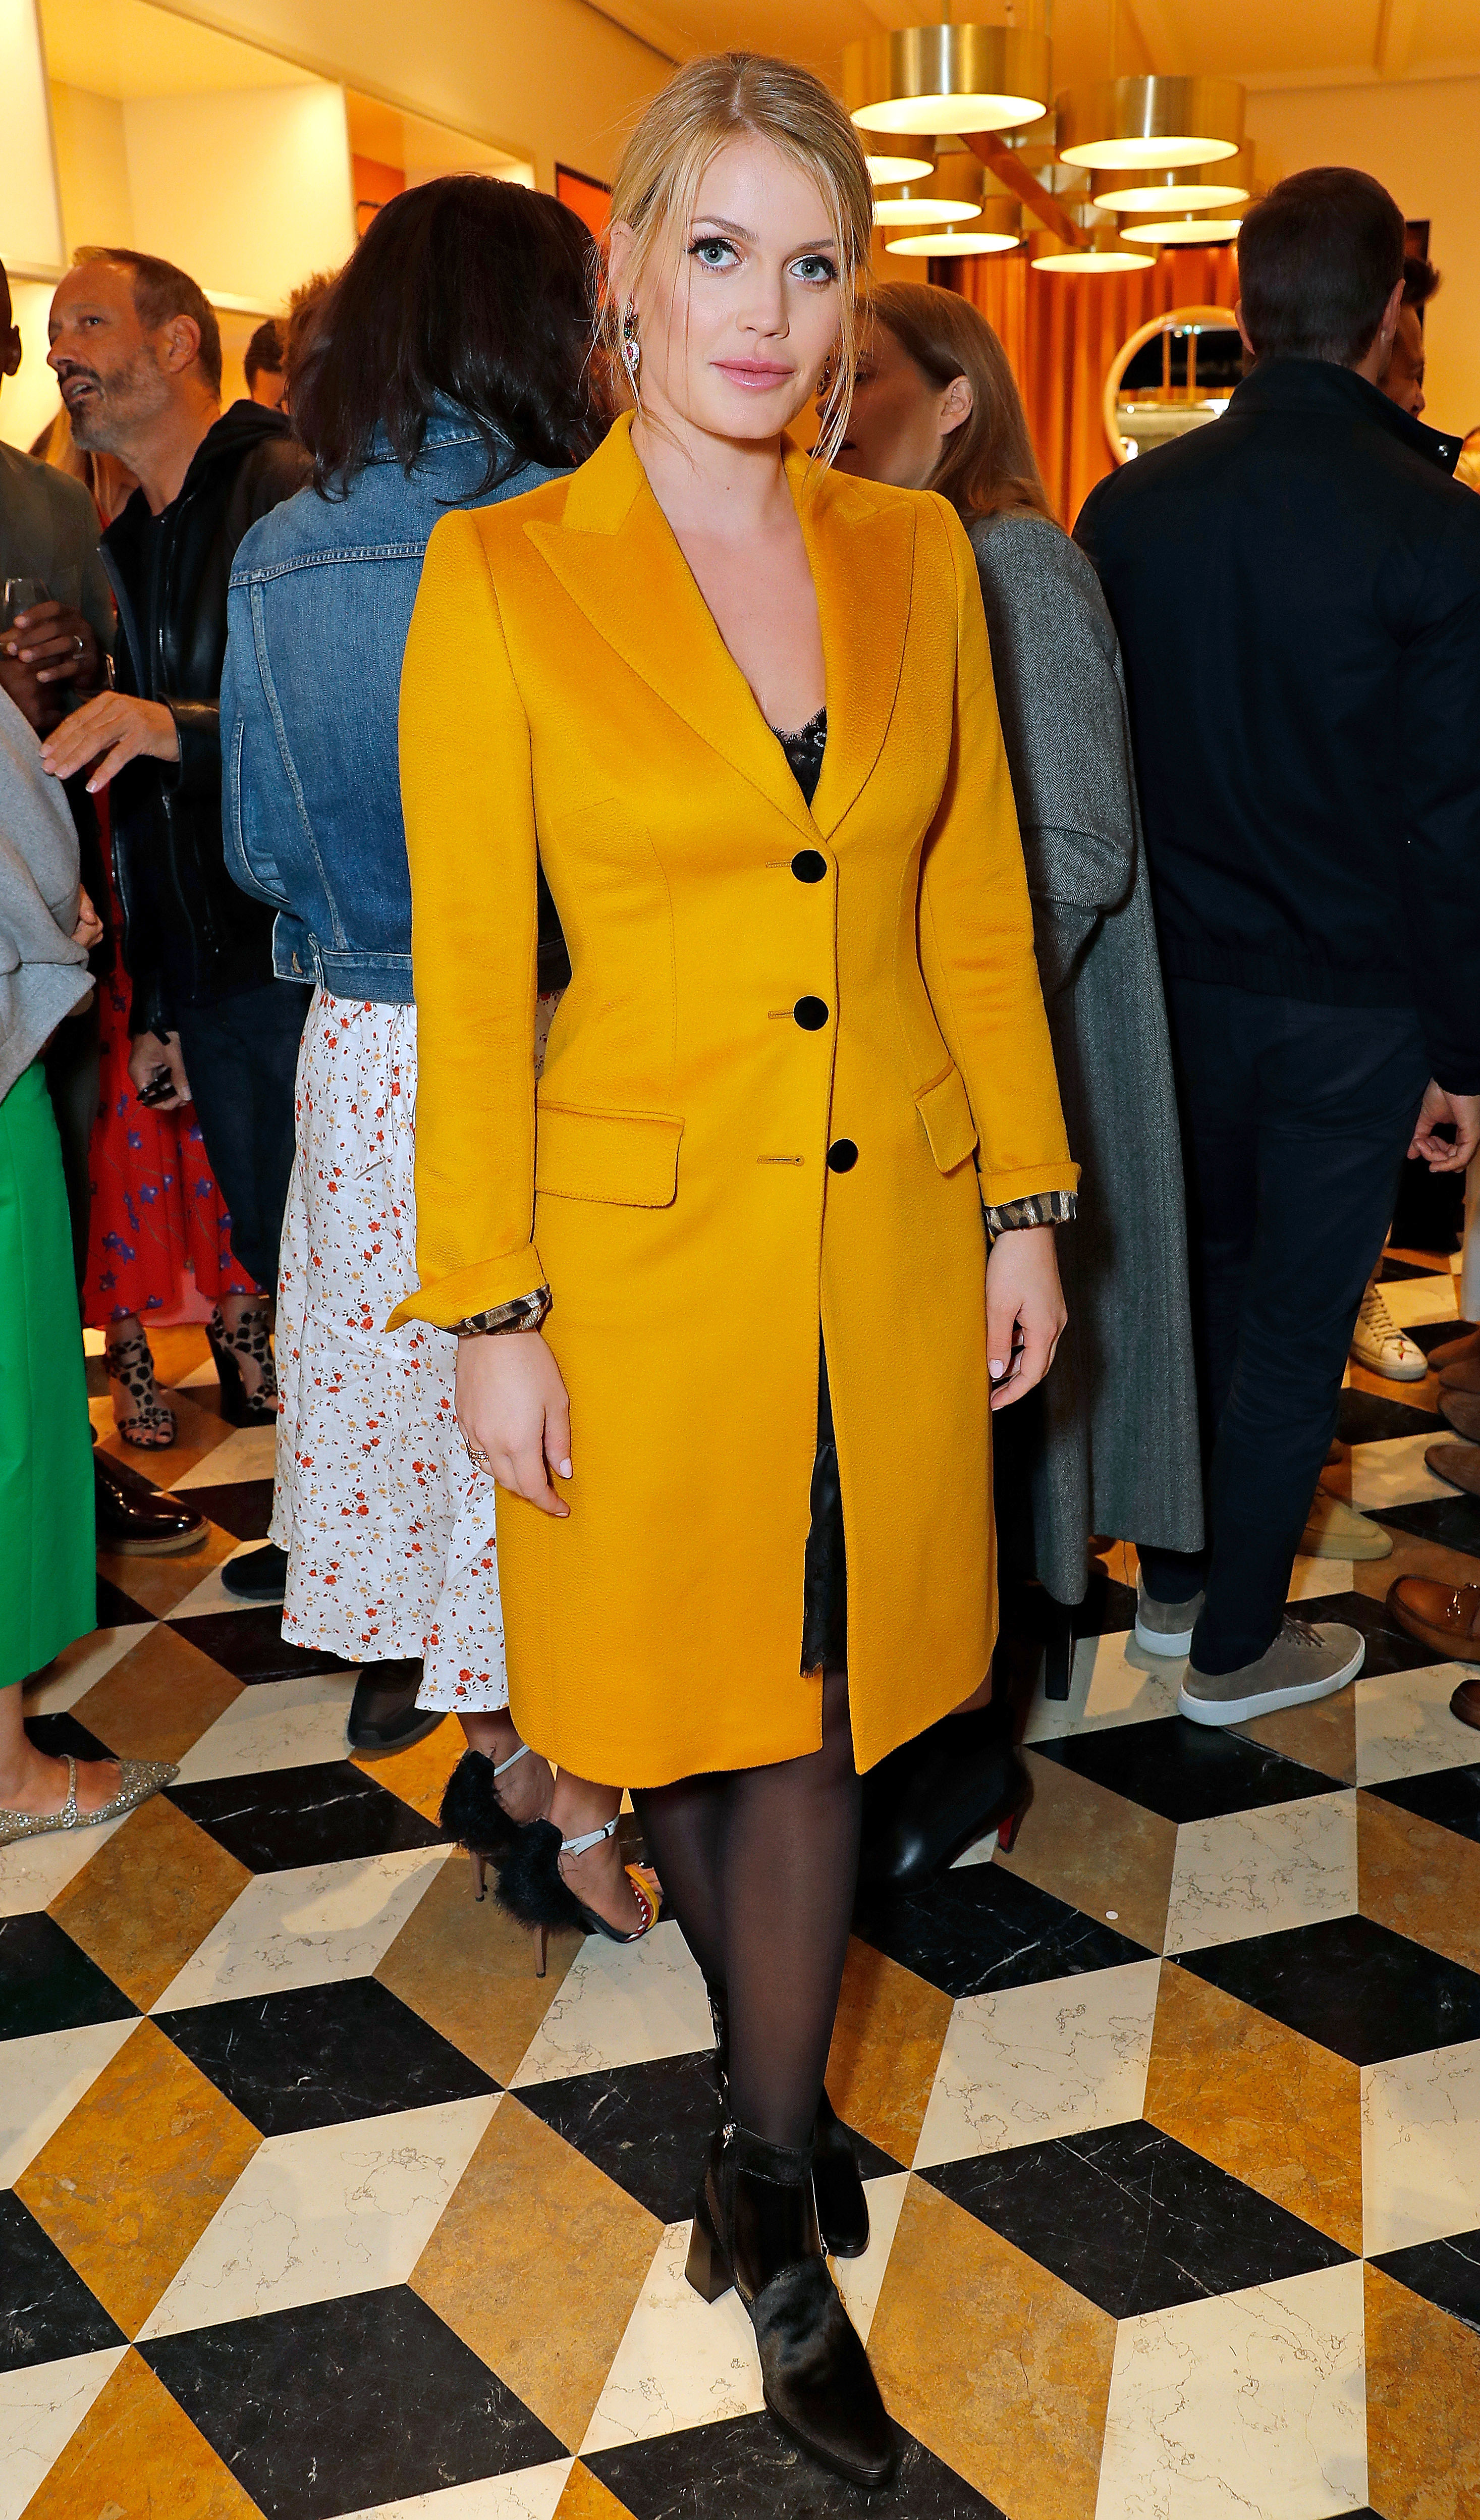 Kitty Spencer Slays Again - At a London Fashion Week party on September 15, 2018, the blonde beauty brightened things up in a canary yellow Dolce & Gabbana coat and Bulgari jewels.